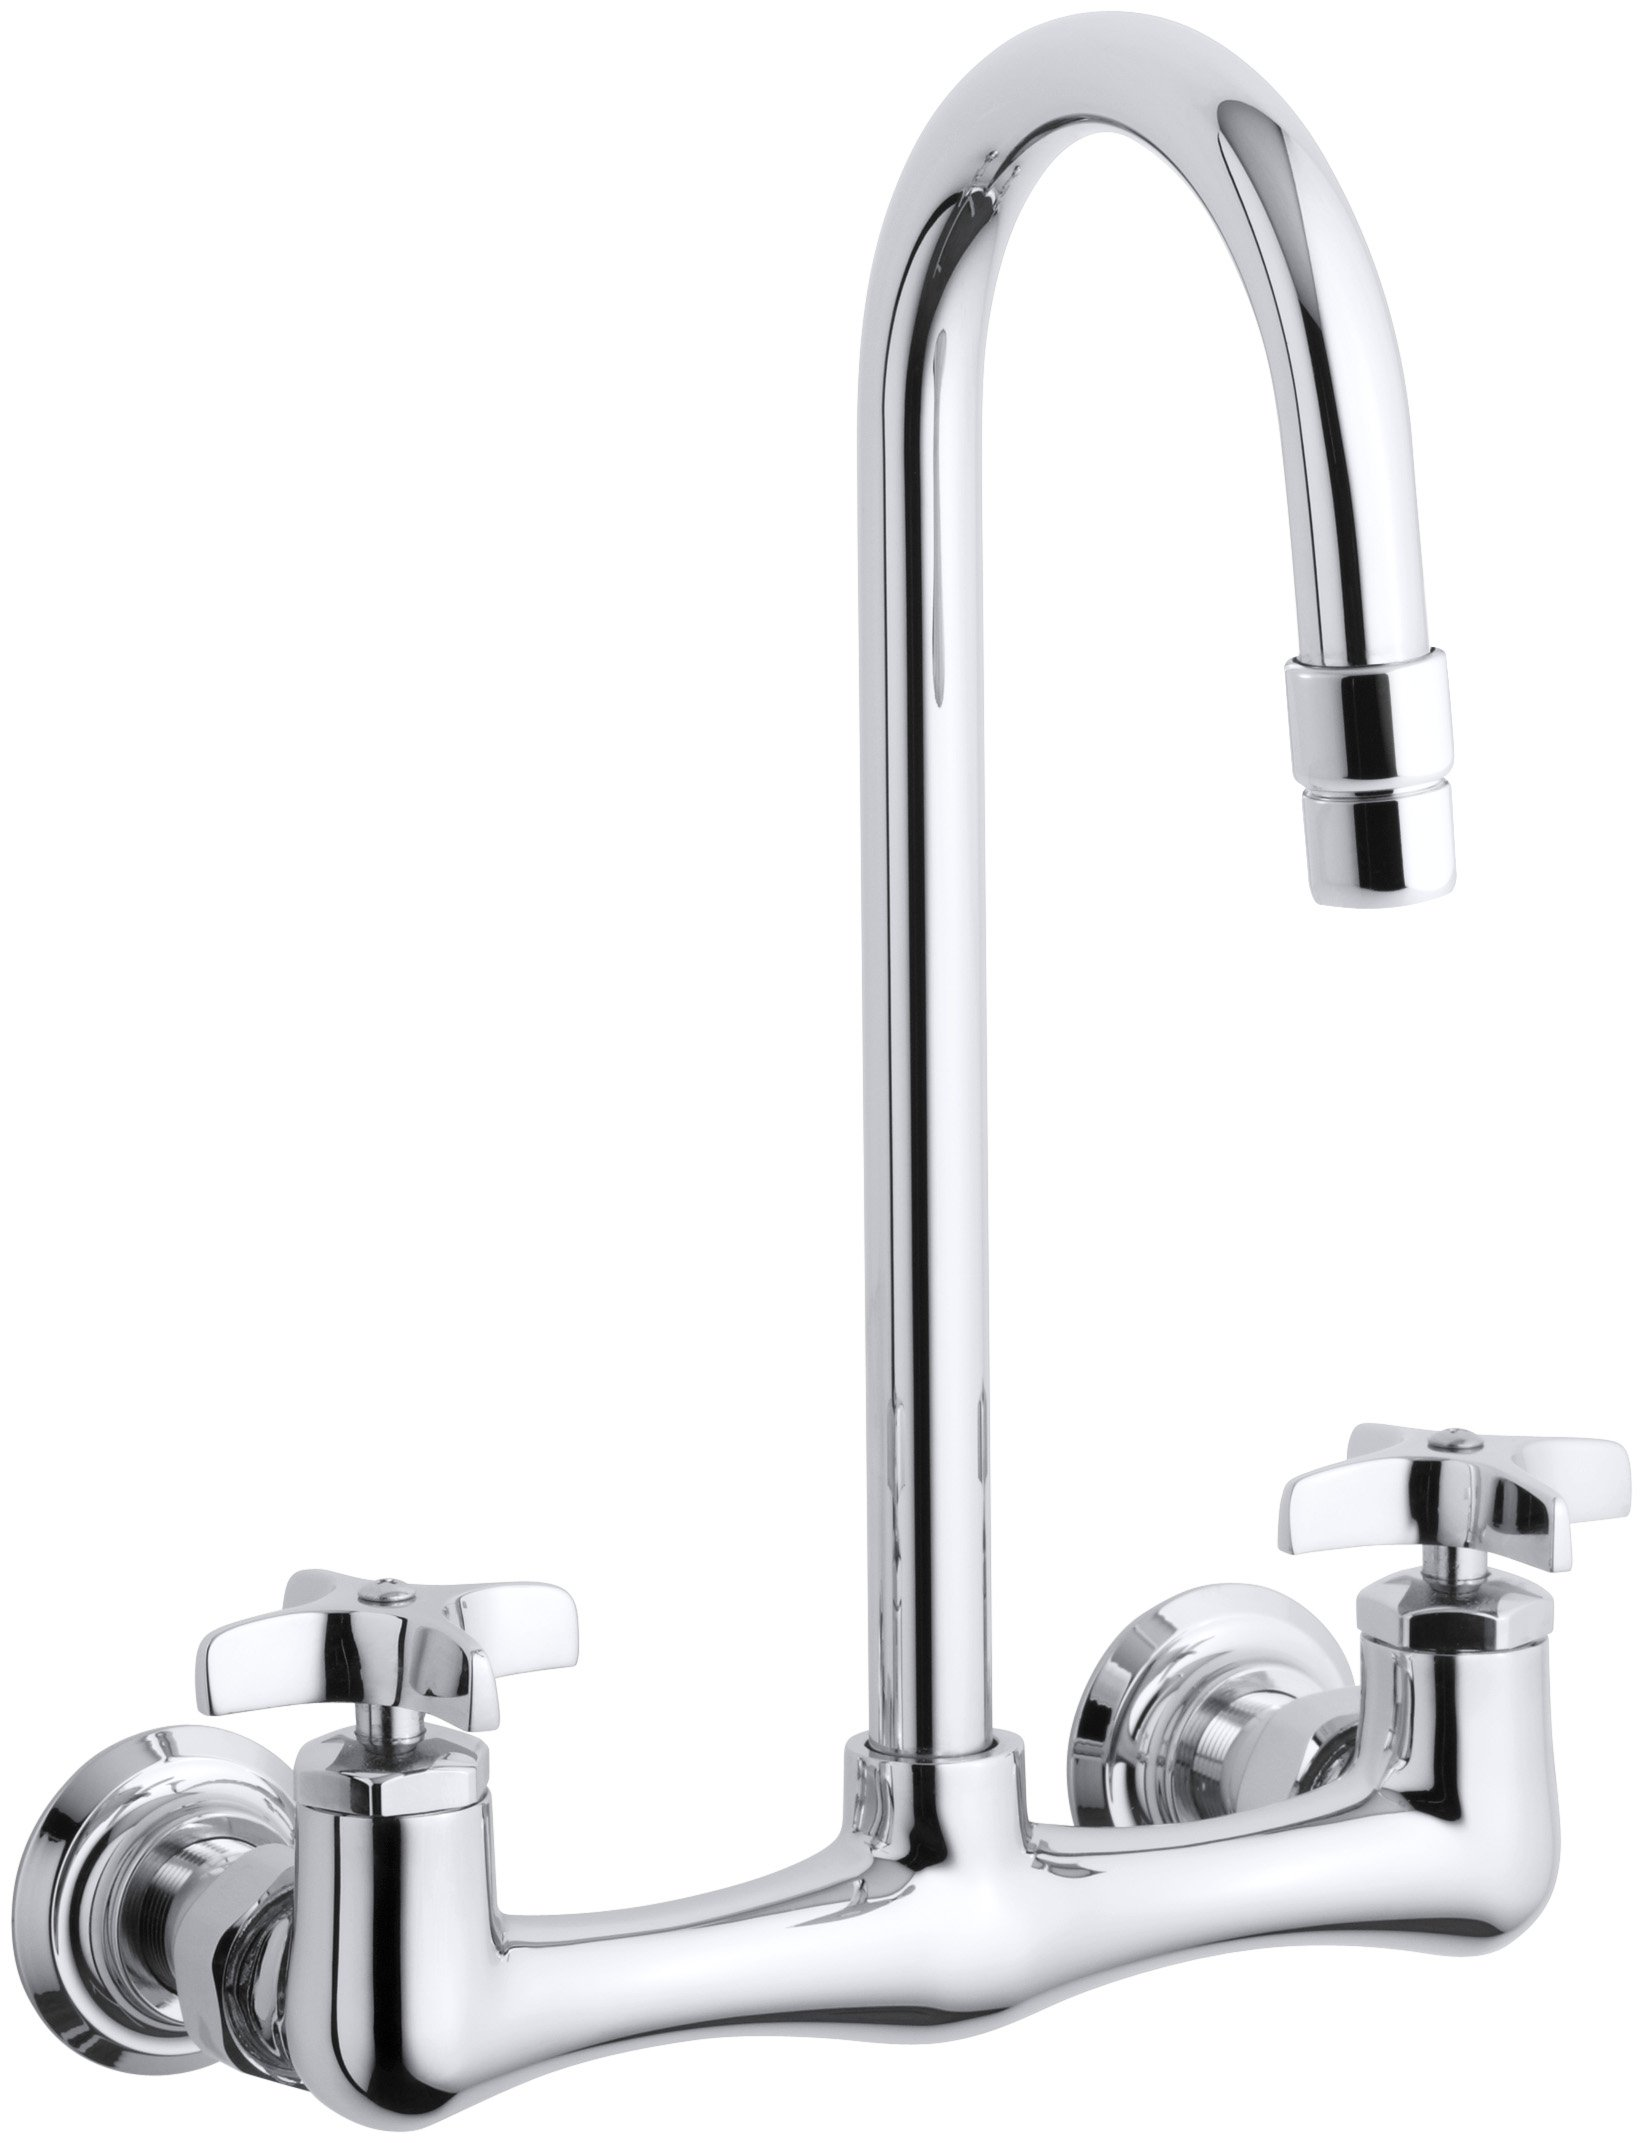 Kohler K-7320-3-CP Triton Utility Sink Faucet with Cross Handles, Polished Chrome by Kohler